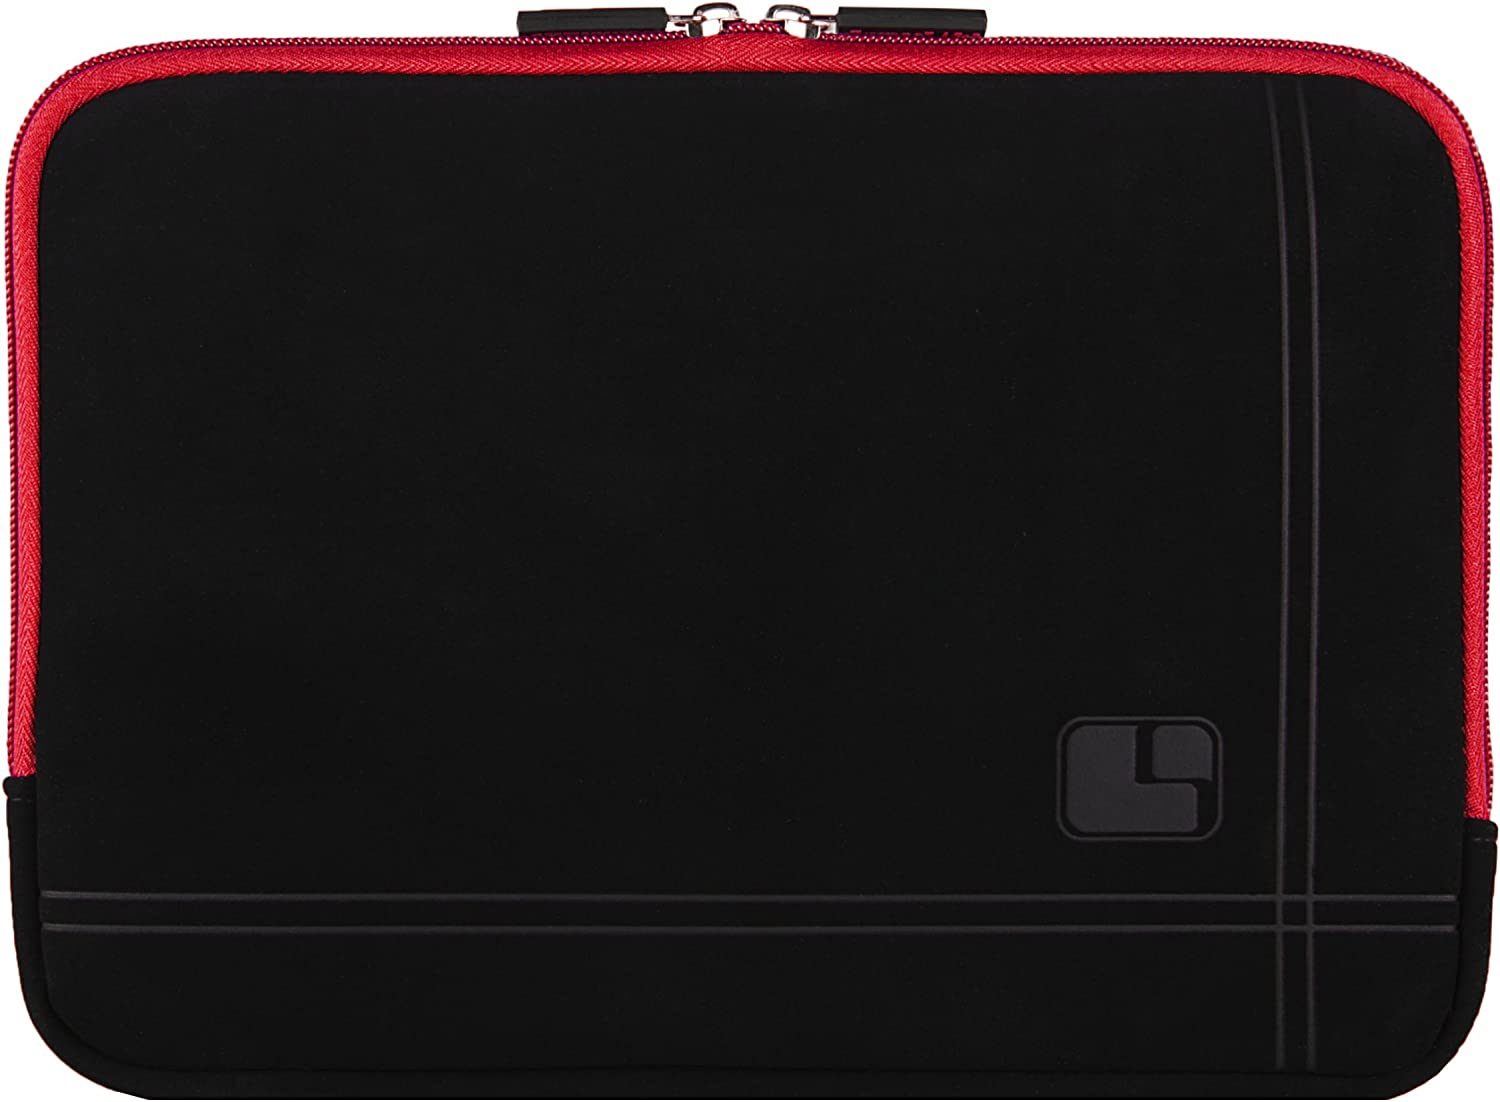 8 inch Black Red Tablet Bag Carrying Case for Lenovo Tab 4, 4+, Yoga Tab 3